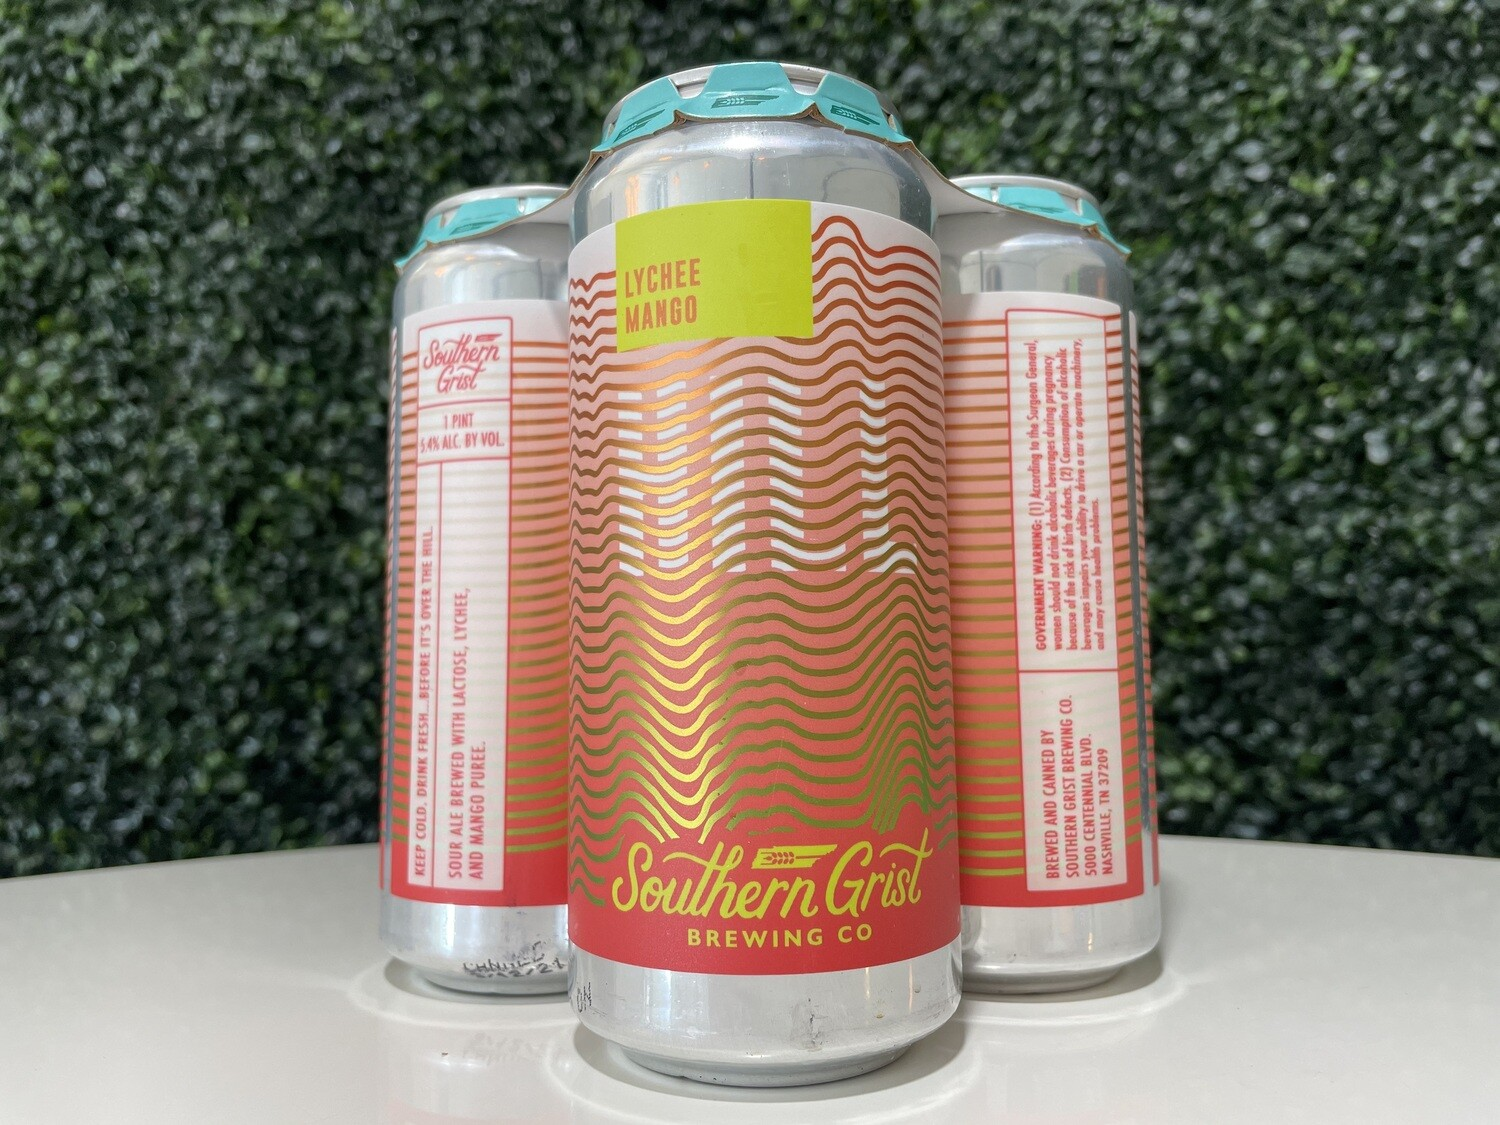 Southern Grist - Lychee Mango Hill - Fruited Sour - 5.4% ABV - 16oz Can